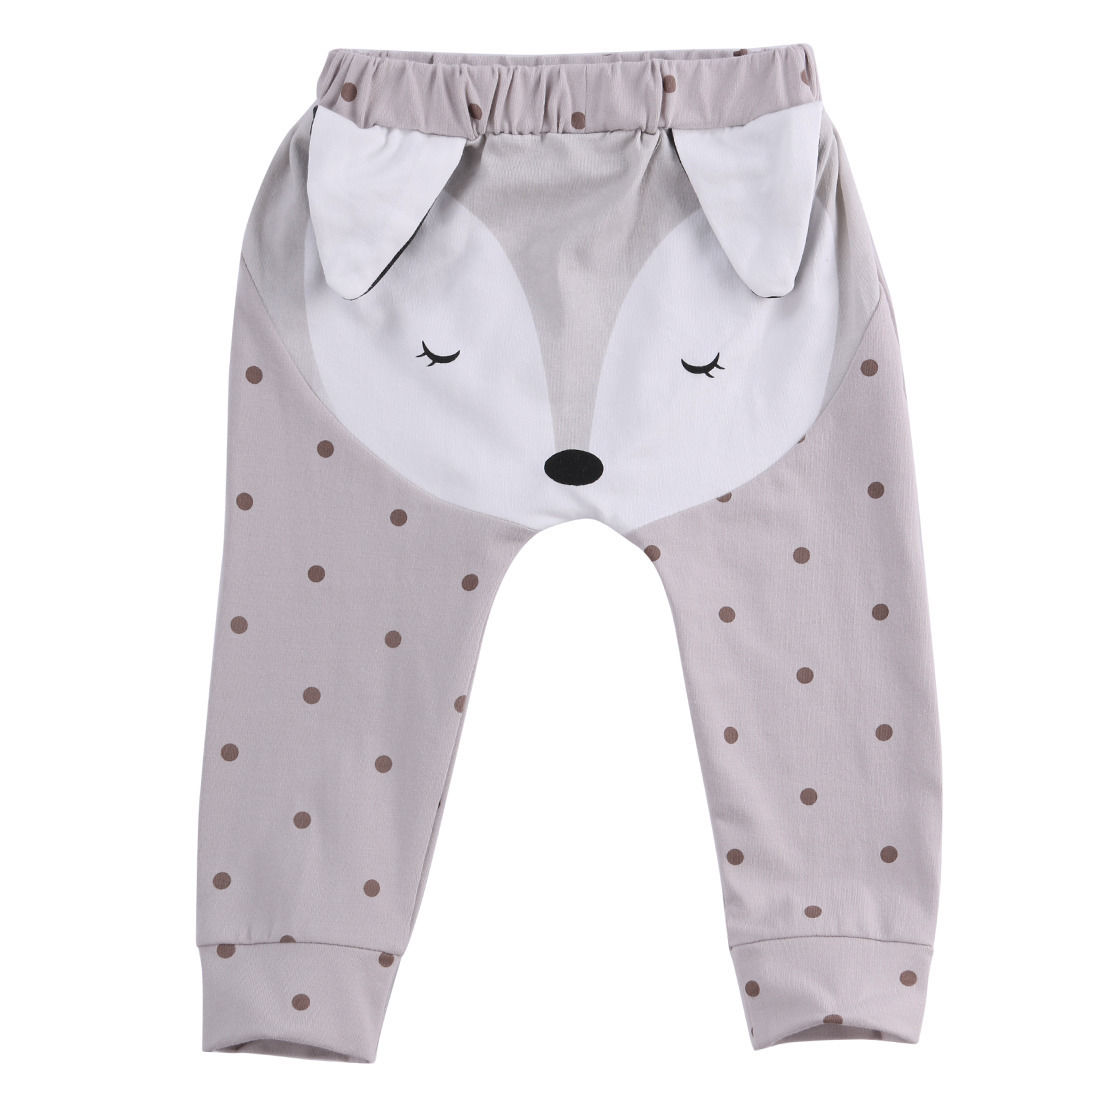 0-24 M Kids Harem Pants Toddlers Infants Baby Boy Girl Cotton Trousers Slacks